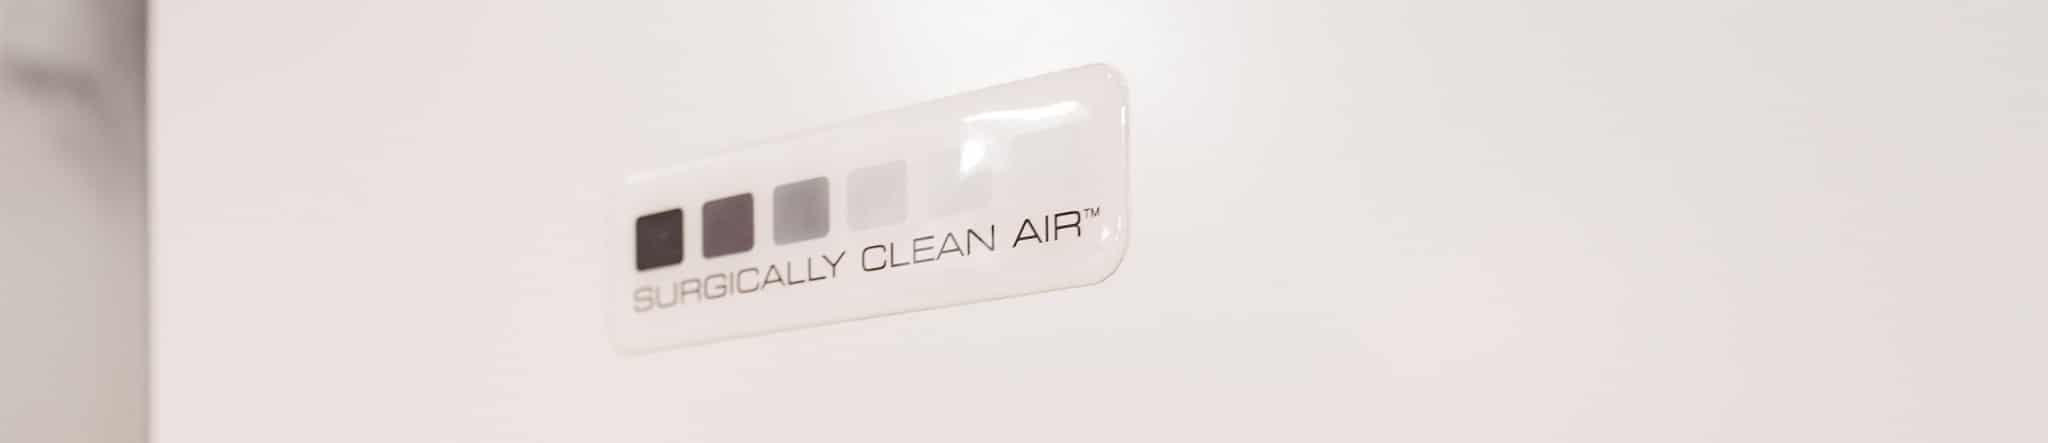 Dental Surgery specialty clean air equipment